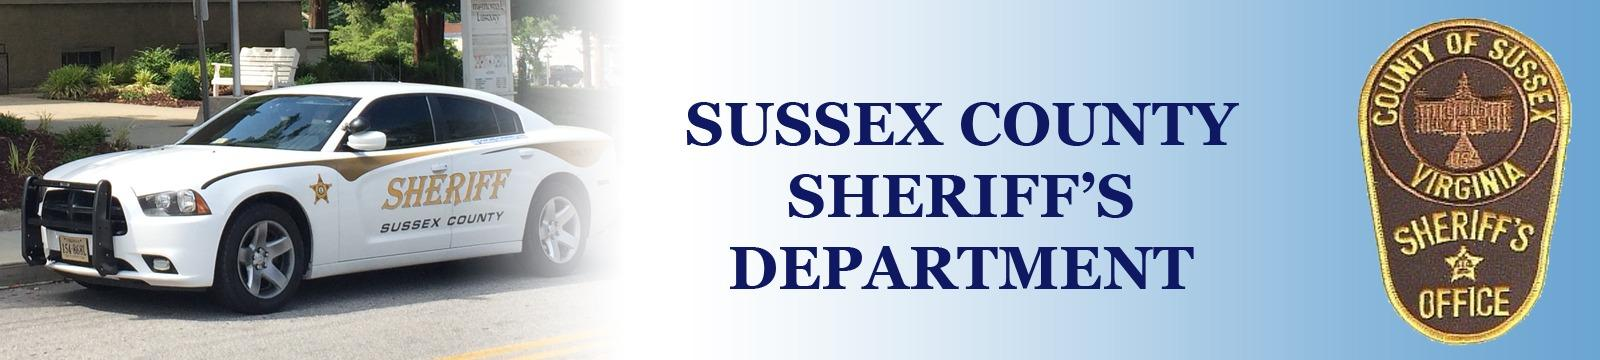 Sussex County Sheriff's Department